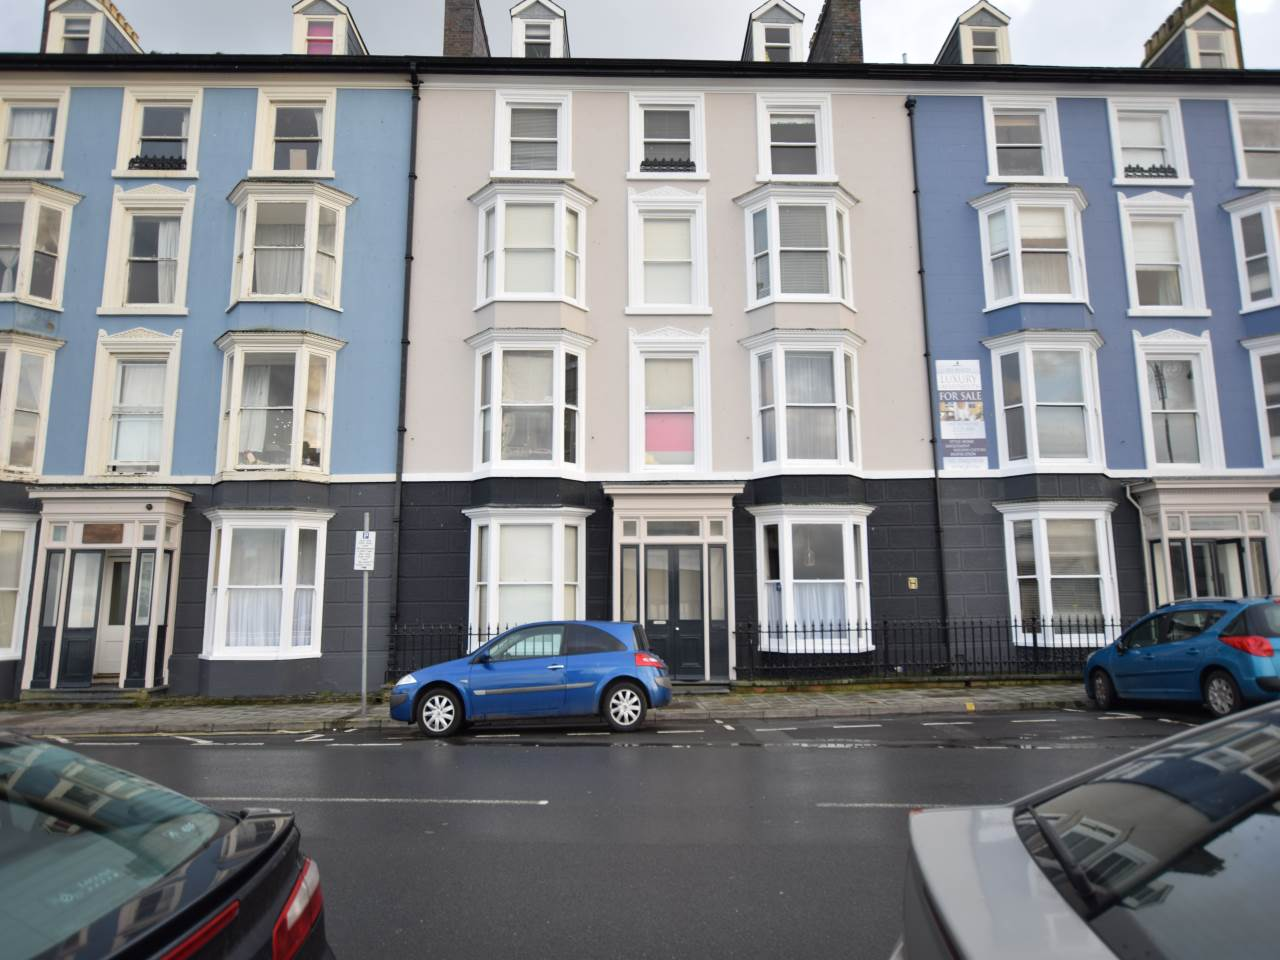 1 bed flat to rent in Ceredigion, SY23